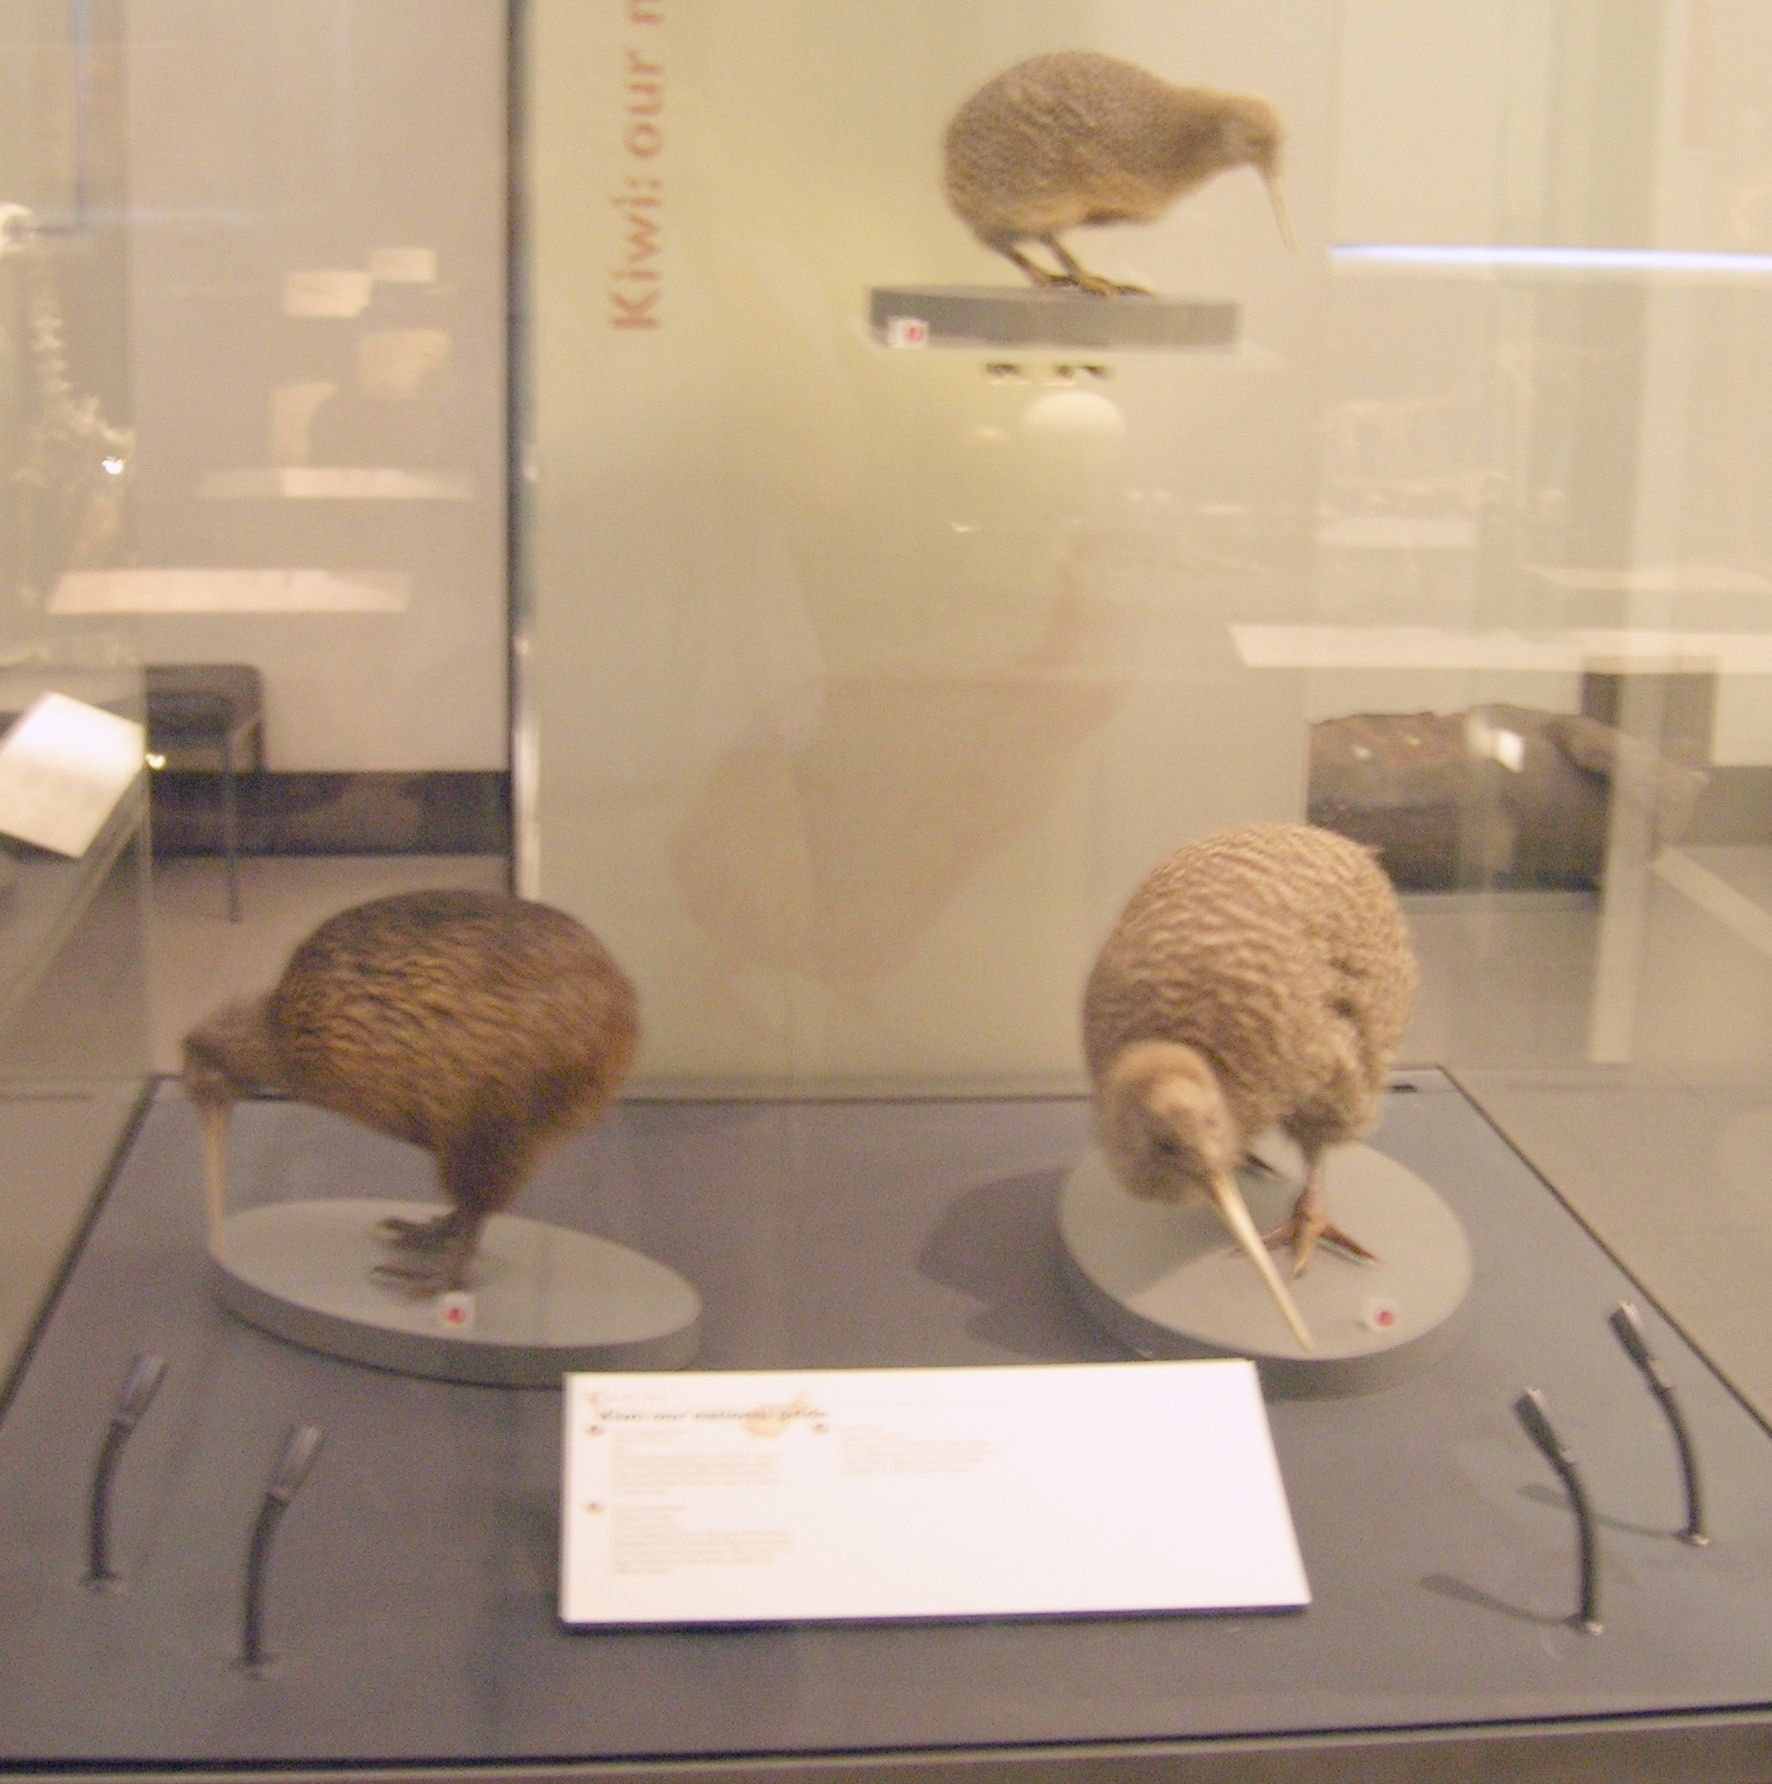 File:Three kiwi species models in Auckland museum.jpg - Wikipedia ...